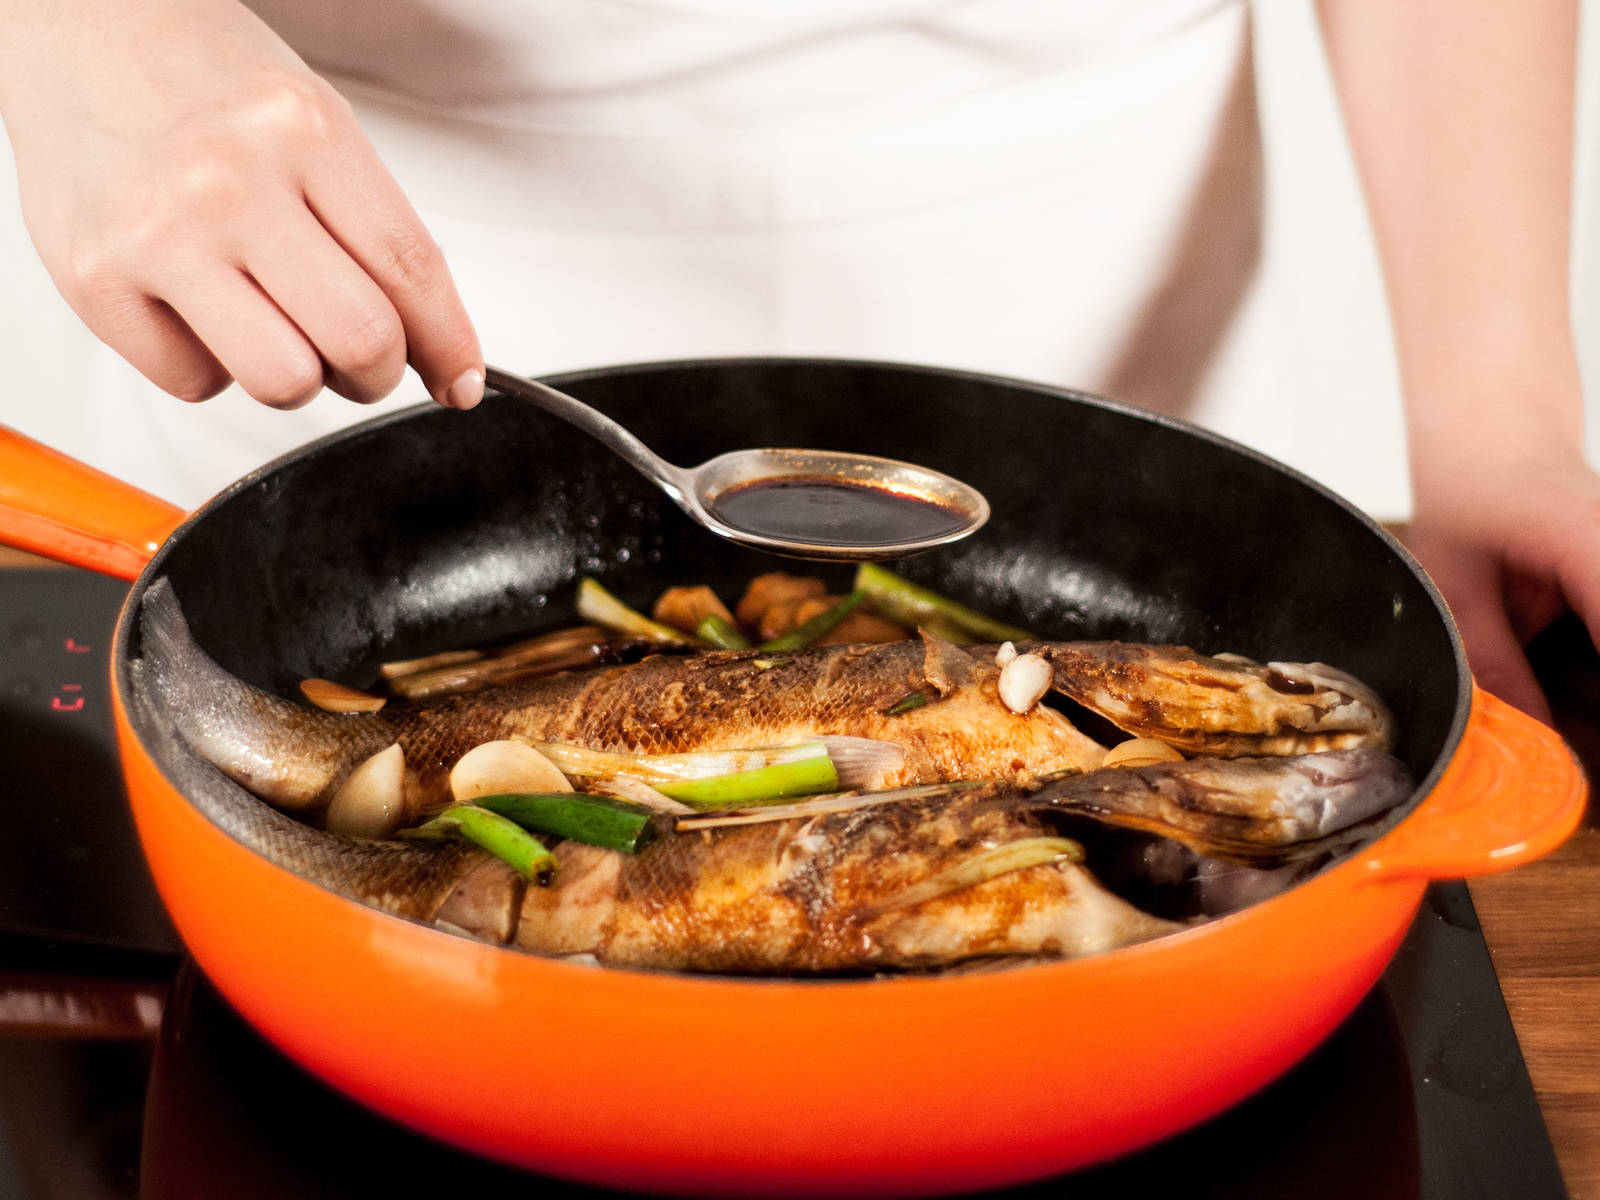 Add water to the pan. Using a spoon, cover the fish with sauce. Cover pan with a lid and allow to simmer on medium-low heat for approx. 20 – 23 min.